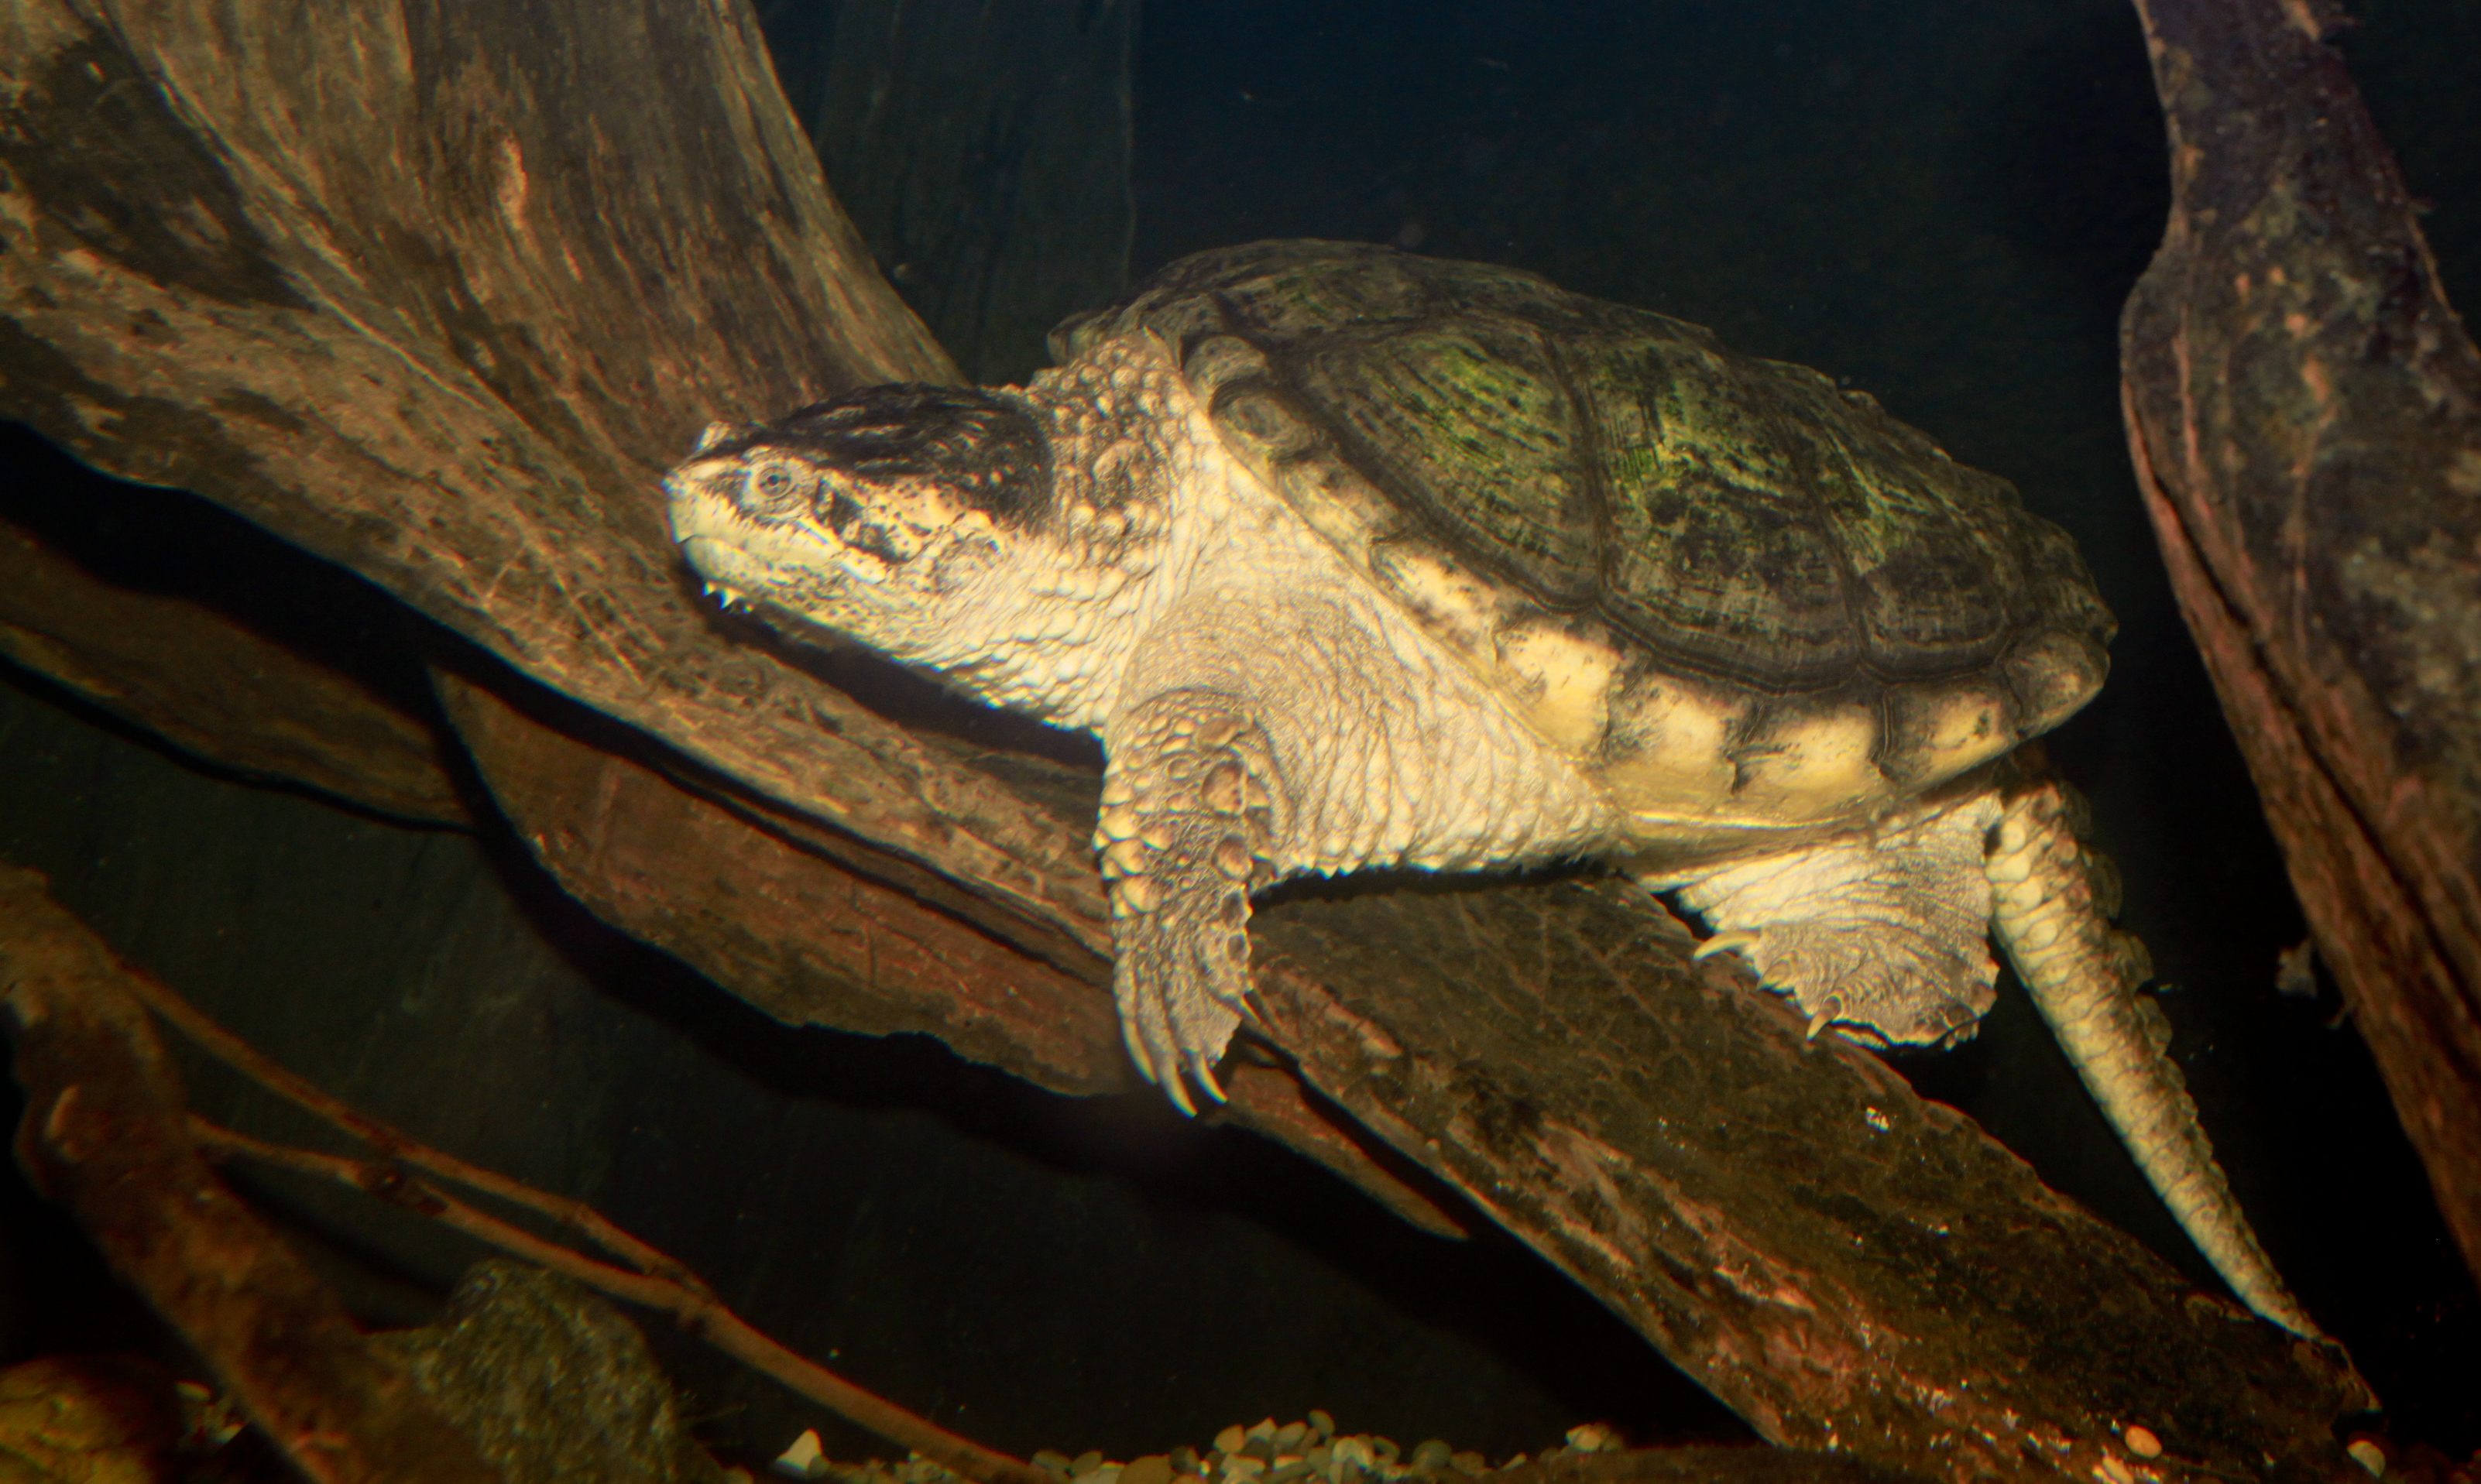 https://upload.wikimedia.org/wikipedia/commons/b/b5/Common_snapping_turtle_-_Chelydra_serpentina.jpg